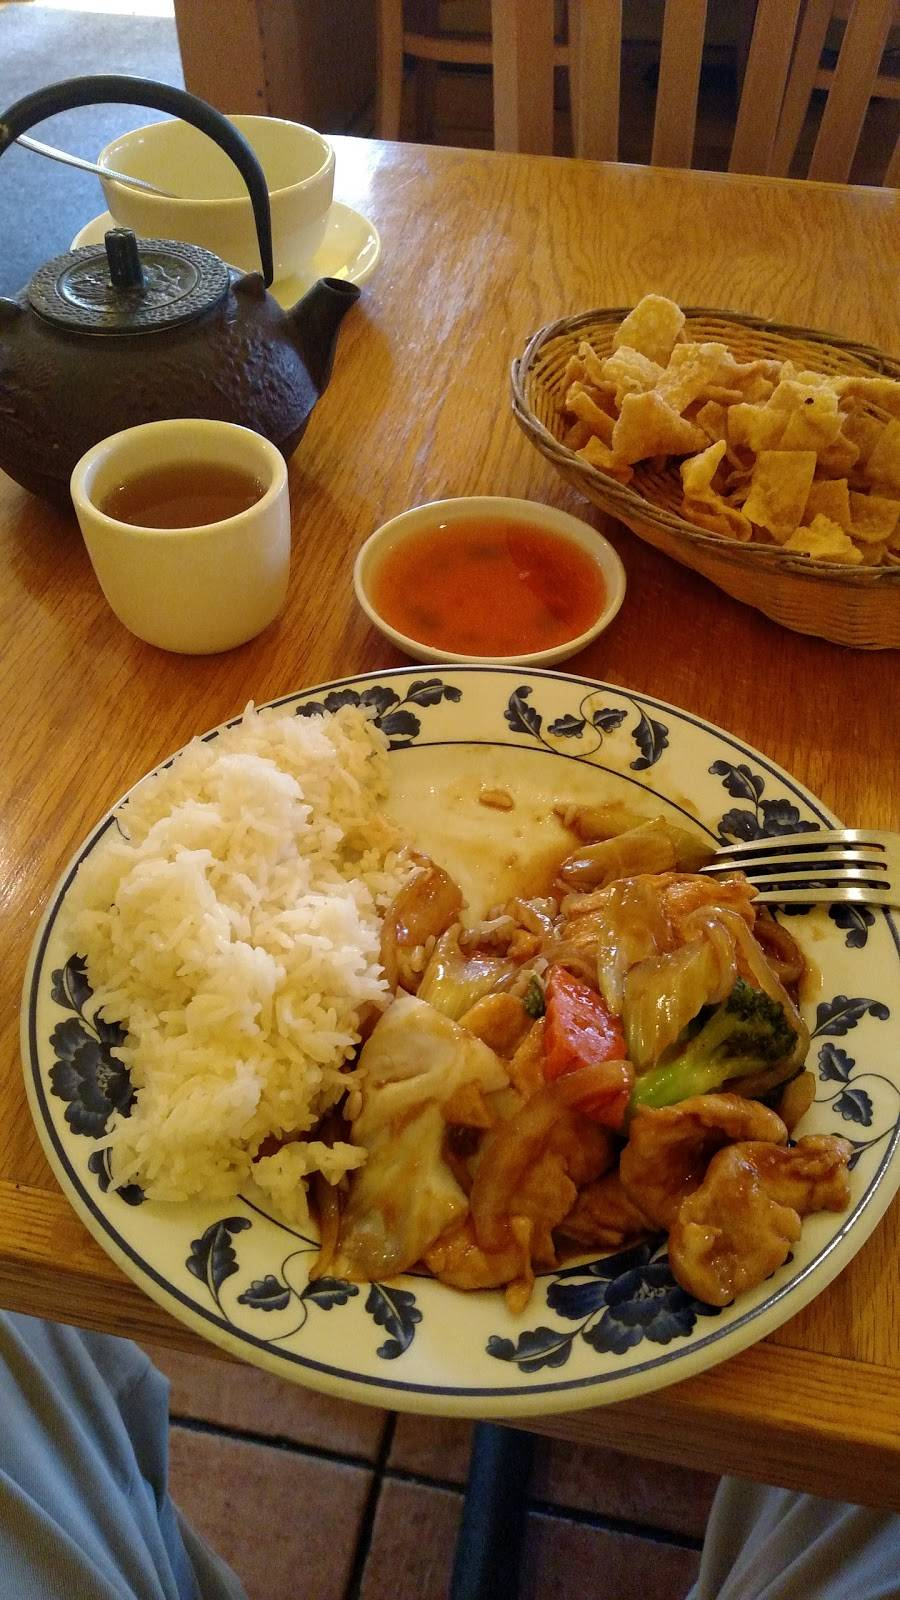 Rice Shop | restaurant | 423 Paterson Ave, East Rutherford, NJ 07073, USA | 2019339432 OR +1 201-933-9432